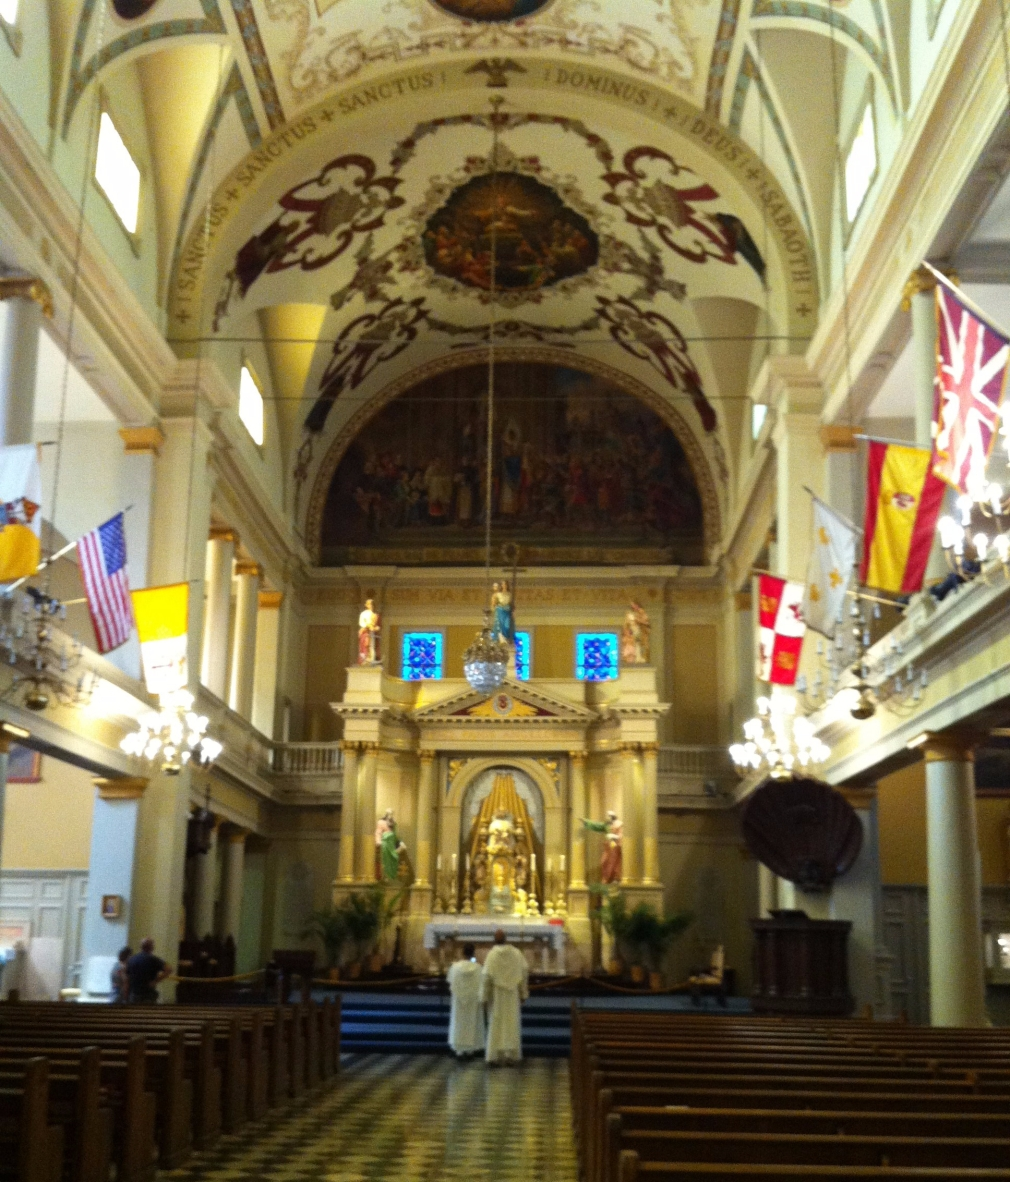 st-louis-cathedral-in-new-orleans.jpg